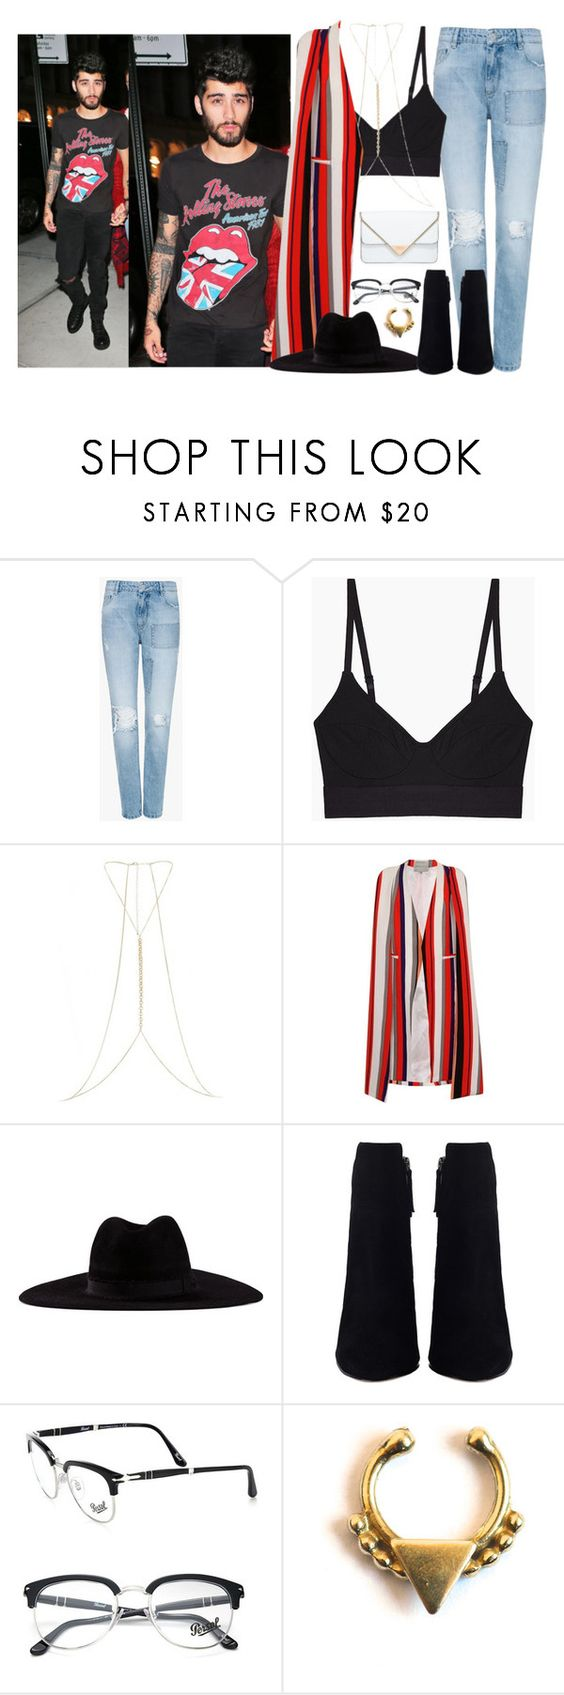 """New York, Look 2 (Night Look) - 10 September 2016"" by thisistheend ❤ liked on Polyvore featuring Zoe Karssen, Base Range, River Island, Topshop, Filù Hats, Persol, Forever 21 and Rebecca Minkoff"